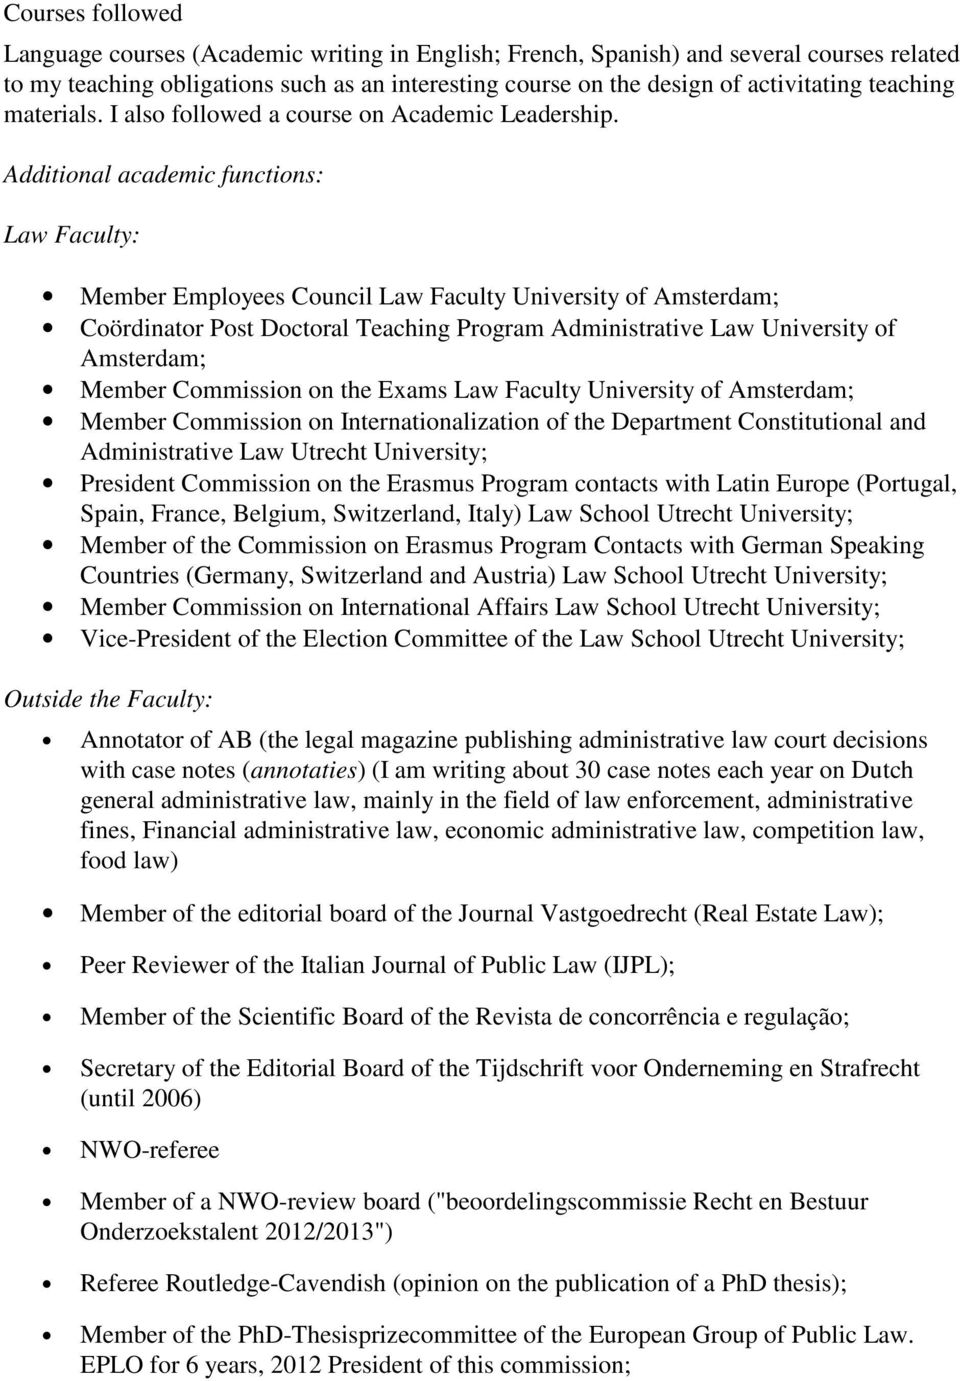 Additional academic functions: Law Faculty: Member Employees Council Law Faculty University of Amsterdam; Coördinator Post Doctoral Teaching Program Administrative Law University of Amsterdam; Member